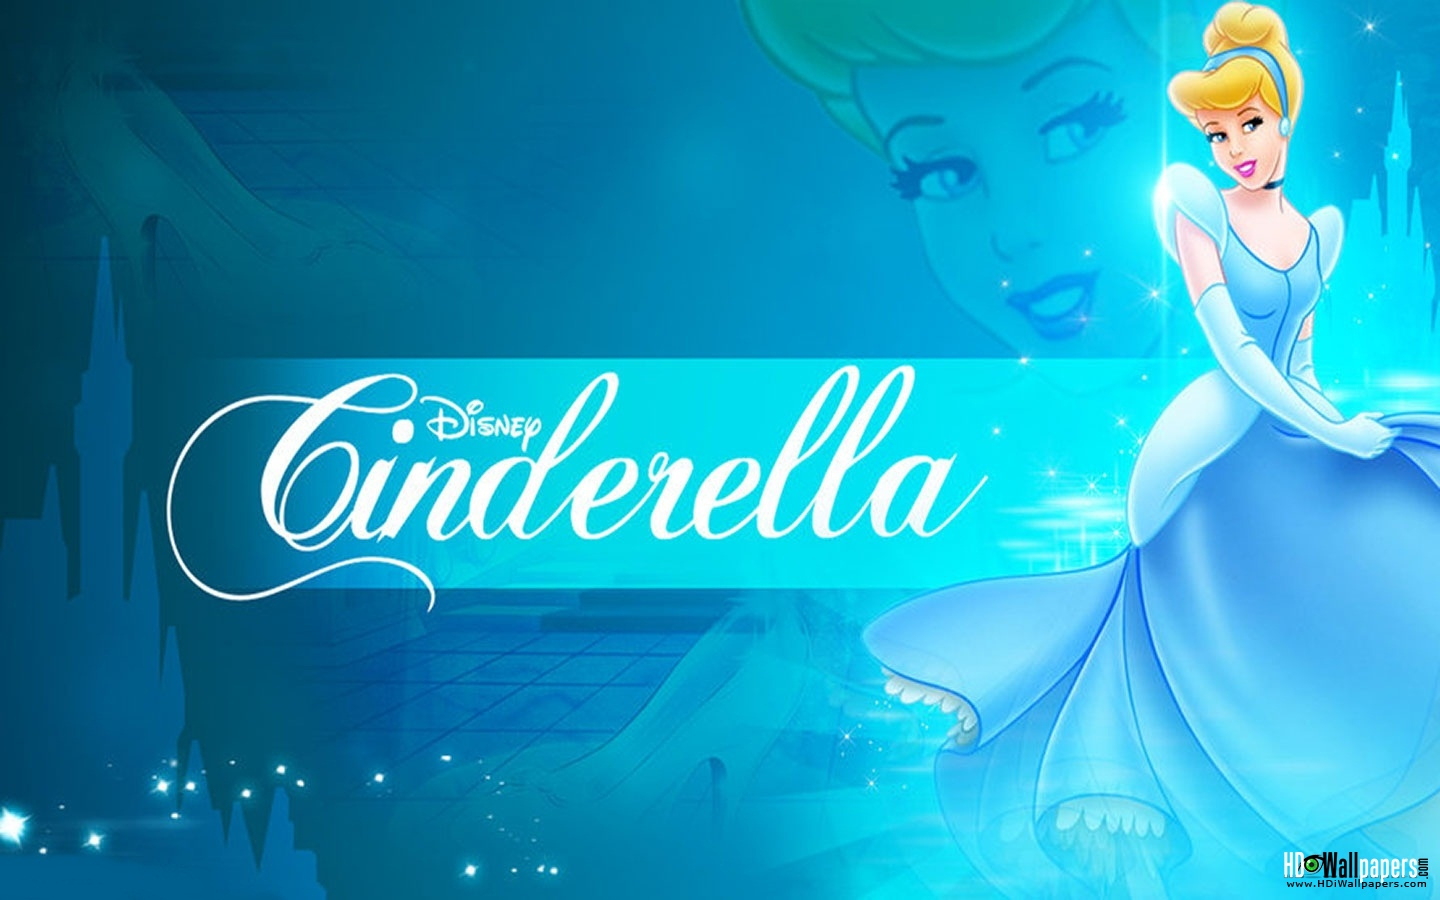 Cinderella wallpaper high resolution 10053 wallpaper walldiskpaper cinderella wallpaper high resolution thecheapjerseys Image collections